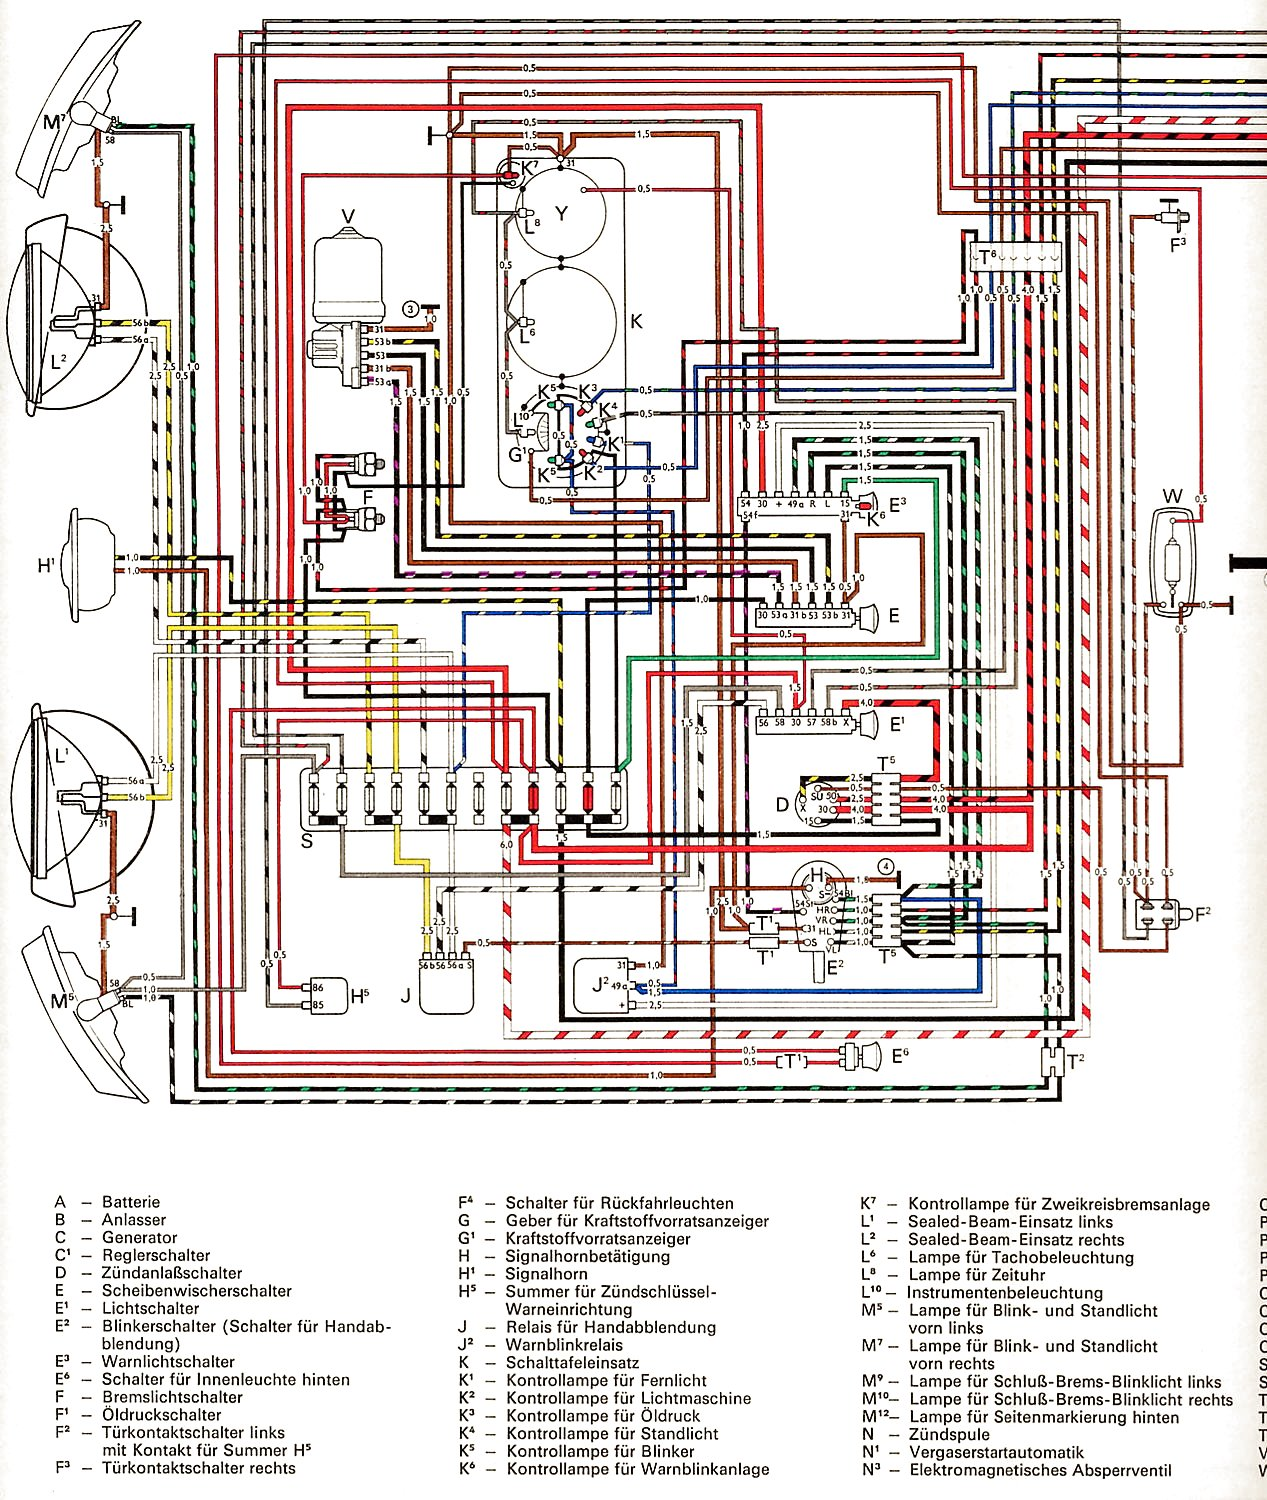 vintagebus com vw bus and other wiring diagrams rh vintagebus com wiring diagram vw beetle 68 convertible wiring diagram vw transporter files dwg